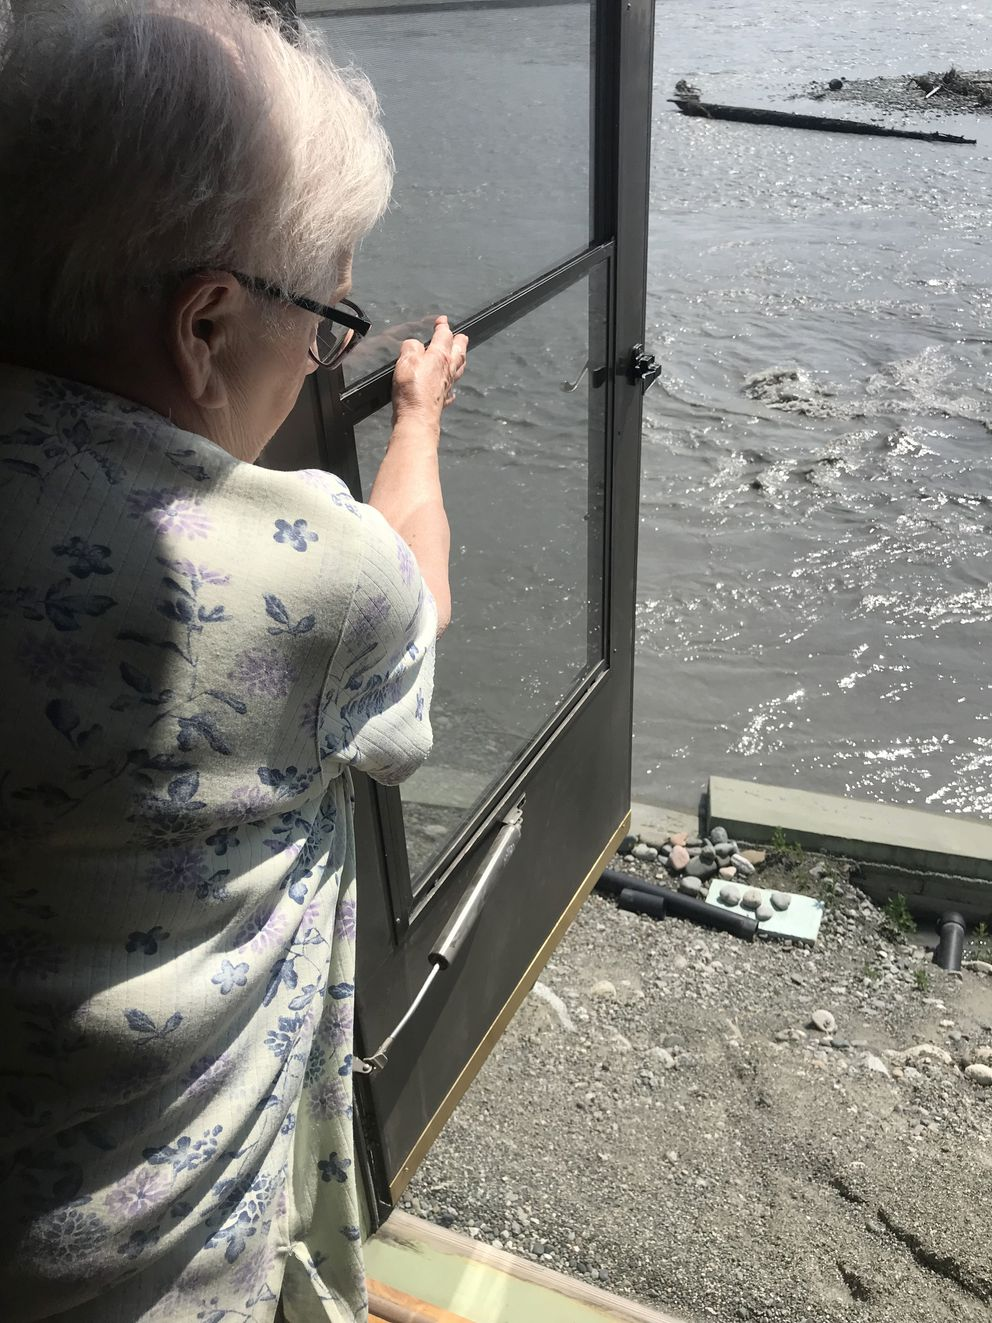 Val Musial opens her backdoor, revealing how close the river is to their home, June 26, 2019. The house is endangered by the eroding banks of the Matanuska River. (Zaz Hollander / ADN)